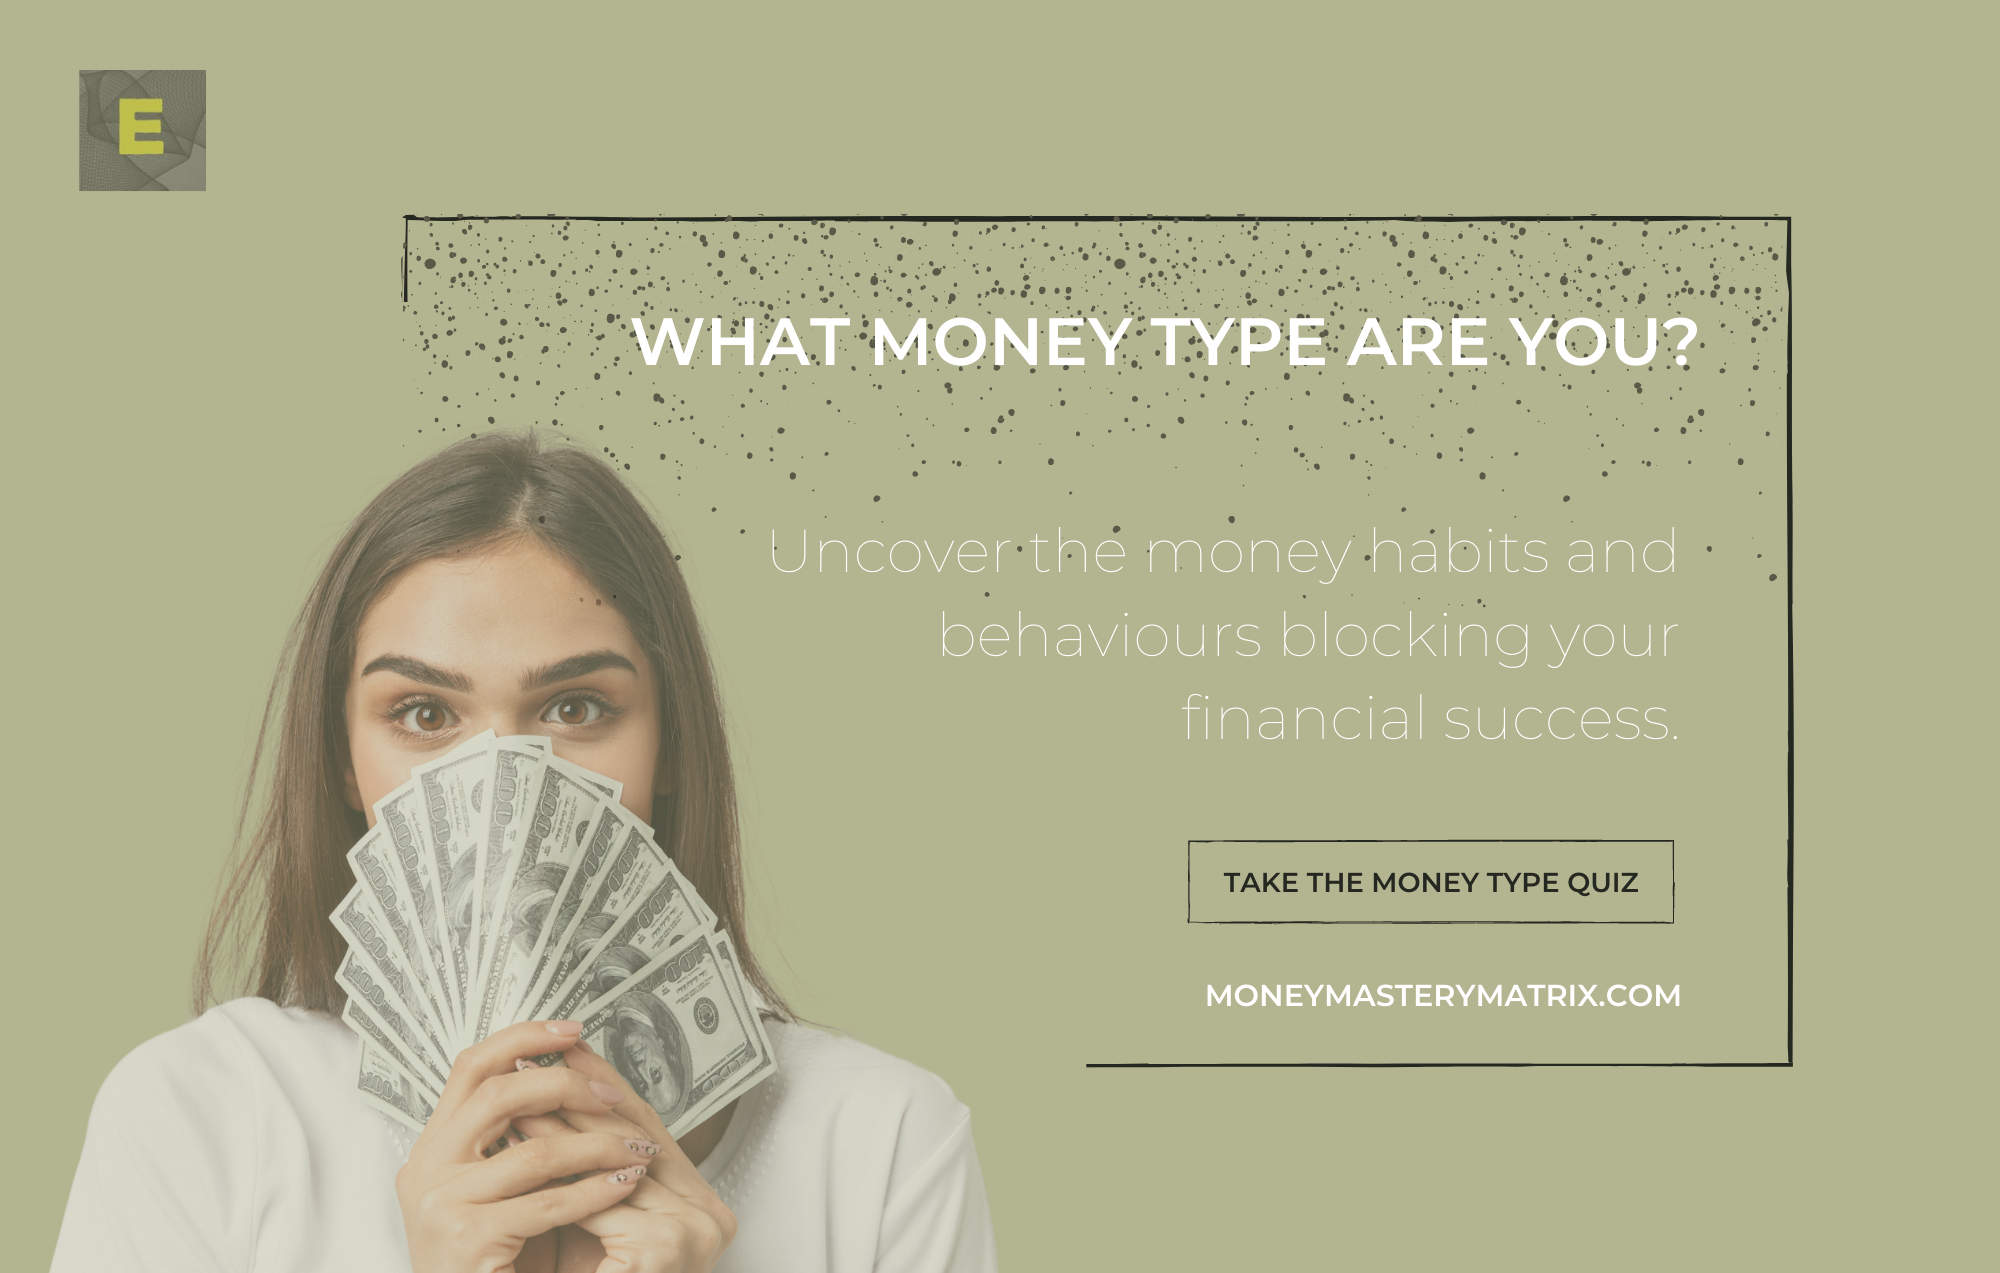 Uncover Your Money Types